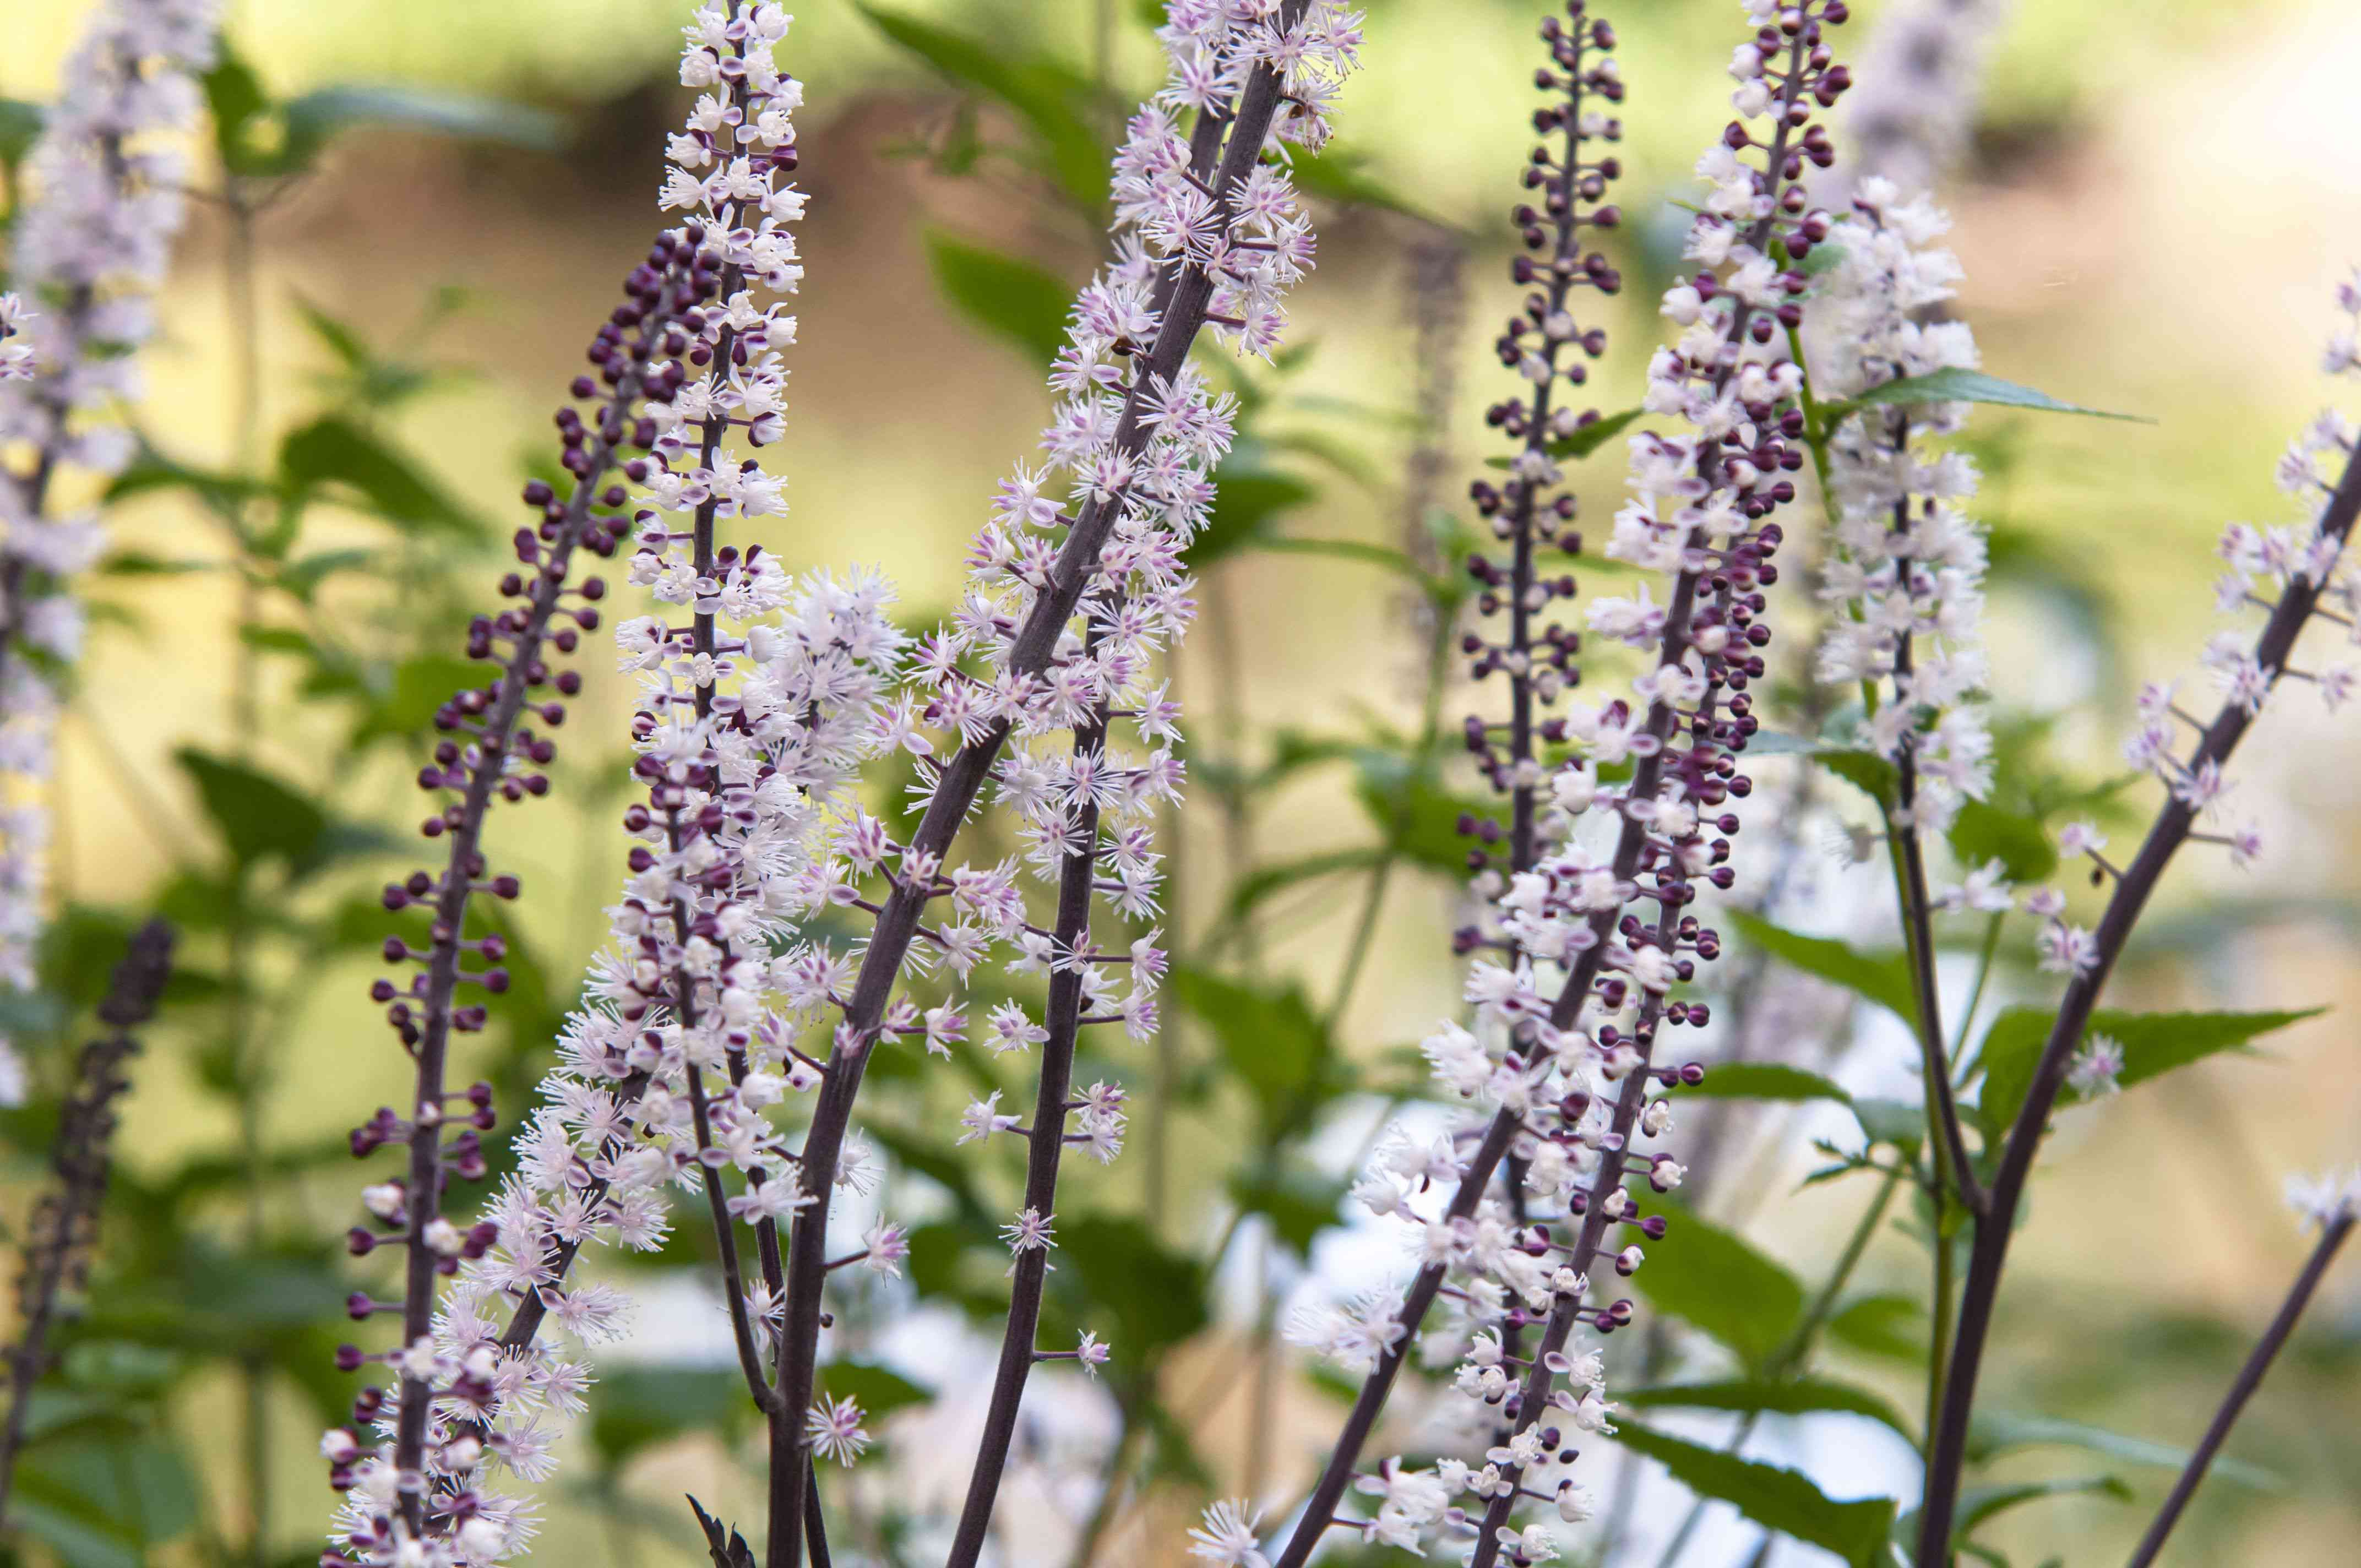 Black cohosh plant with bottle brush-shaped clusters of white flower clusters and red flower buds on stalks closeup